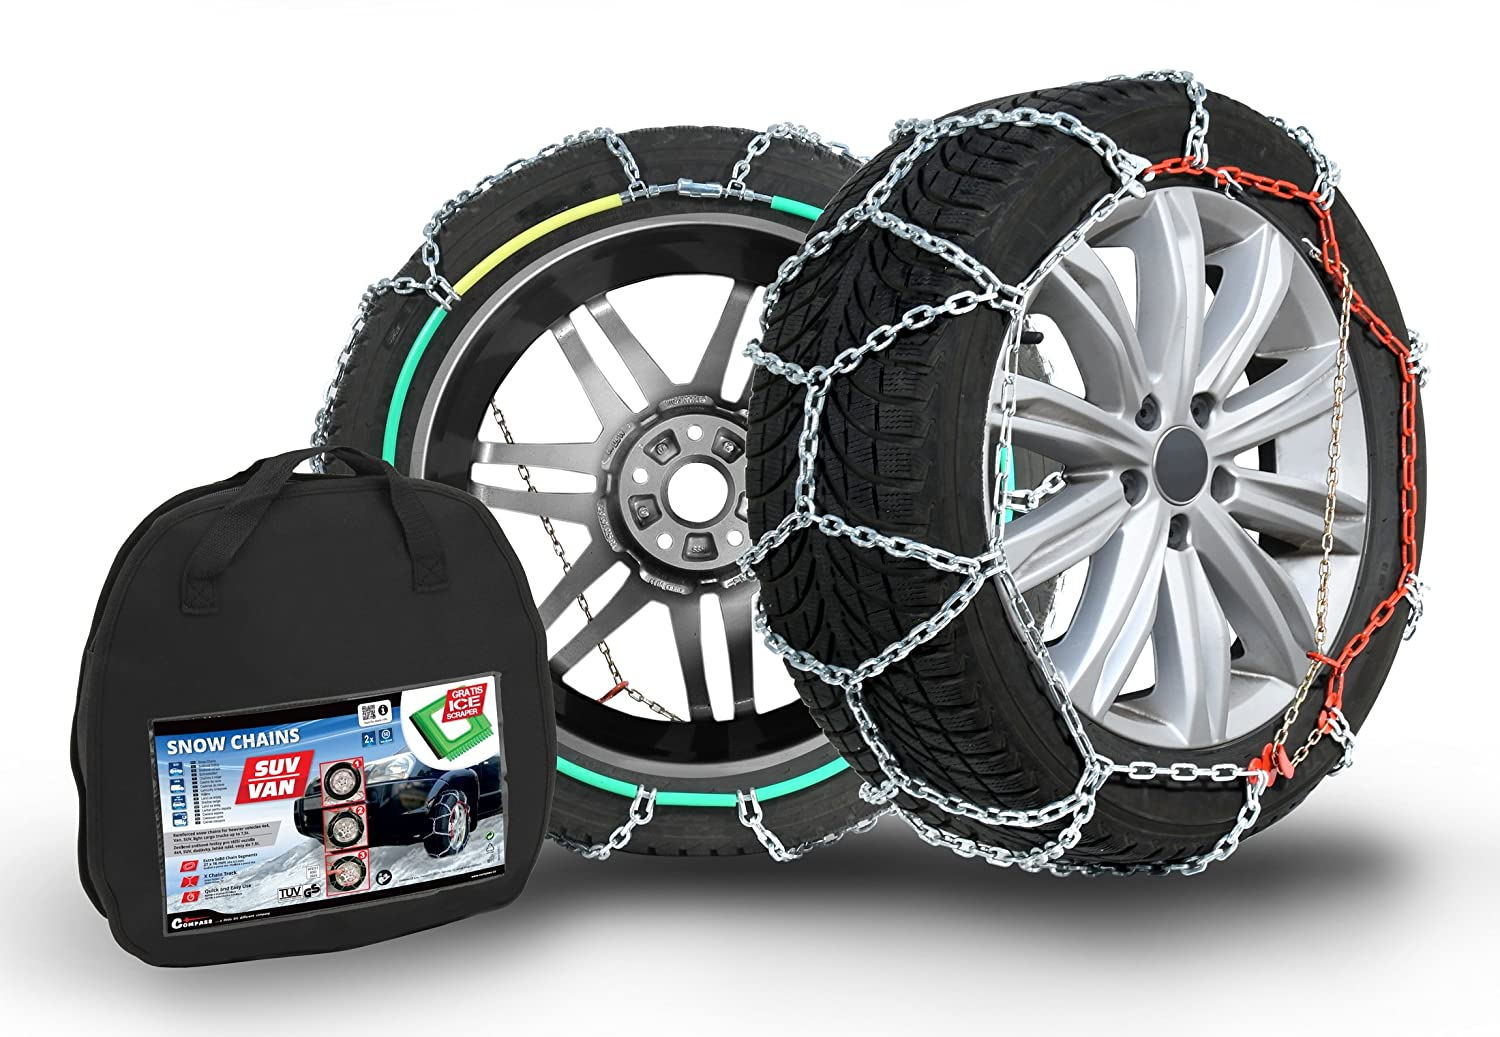 Compass SUV-Van Snow Chains for 285/45 R20 Tyres, Extra strong 16x27mm. TÜ V-approved (270), 1 Pair Extra strong 16x27mm. TÜV-approved (270)